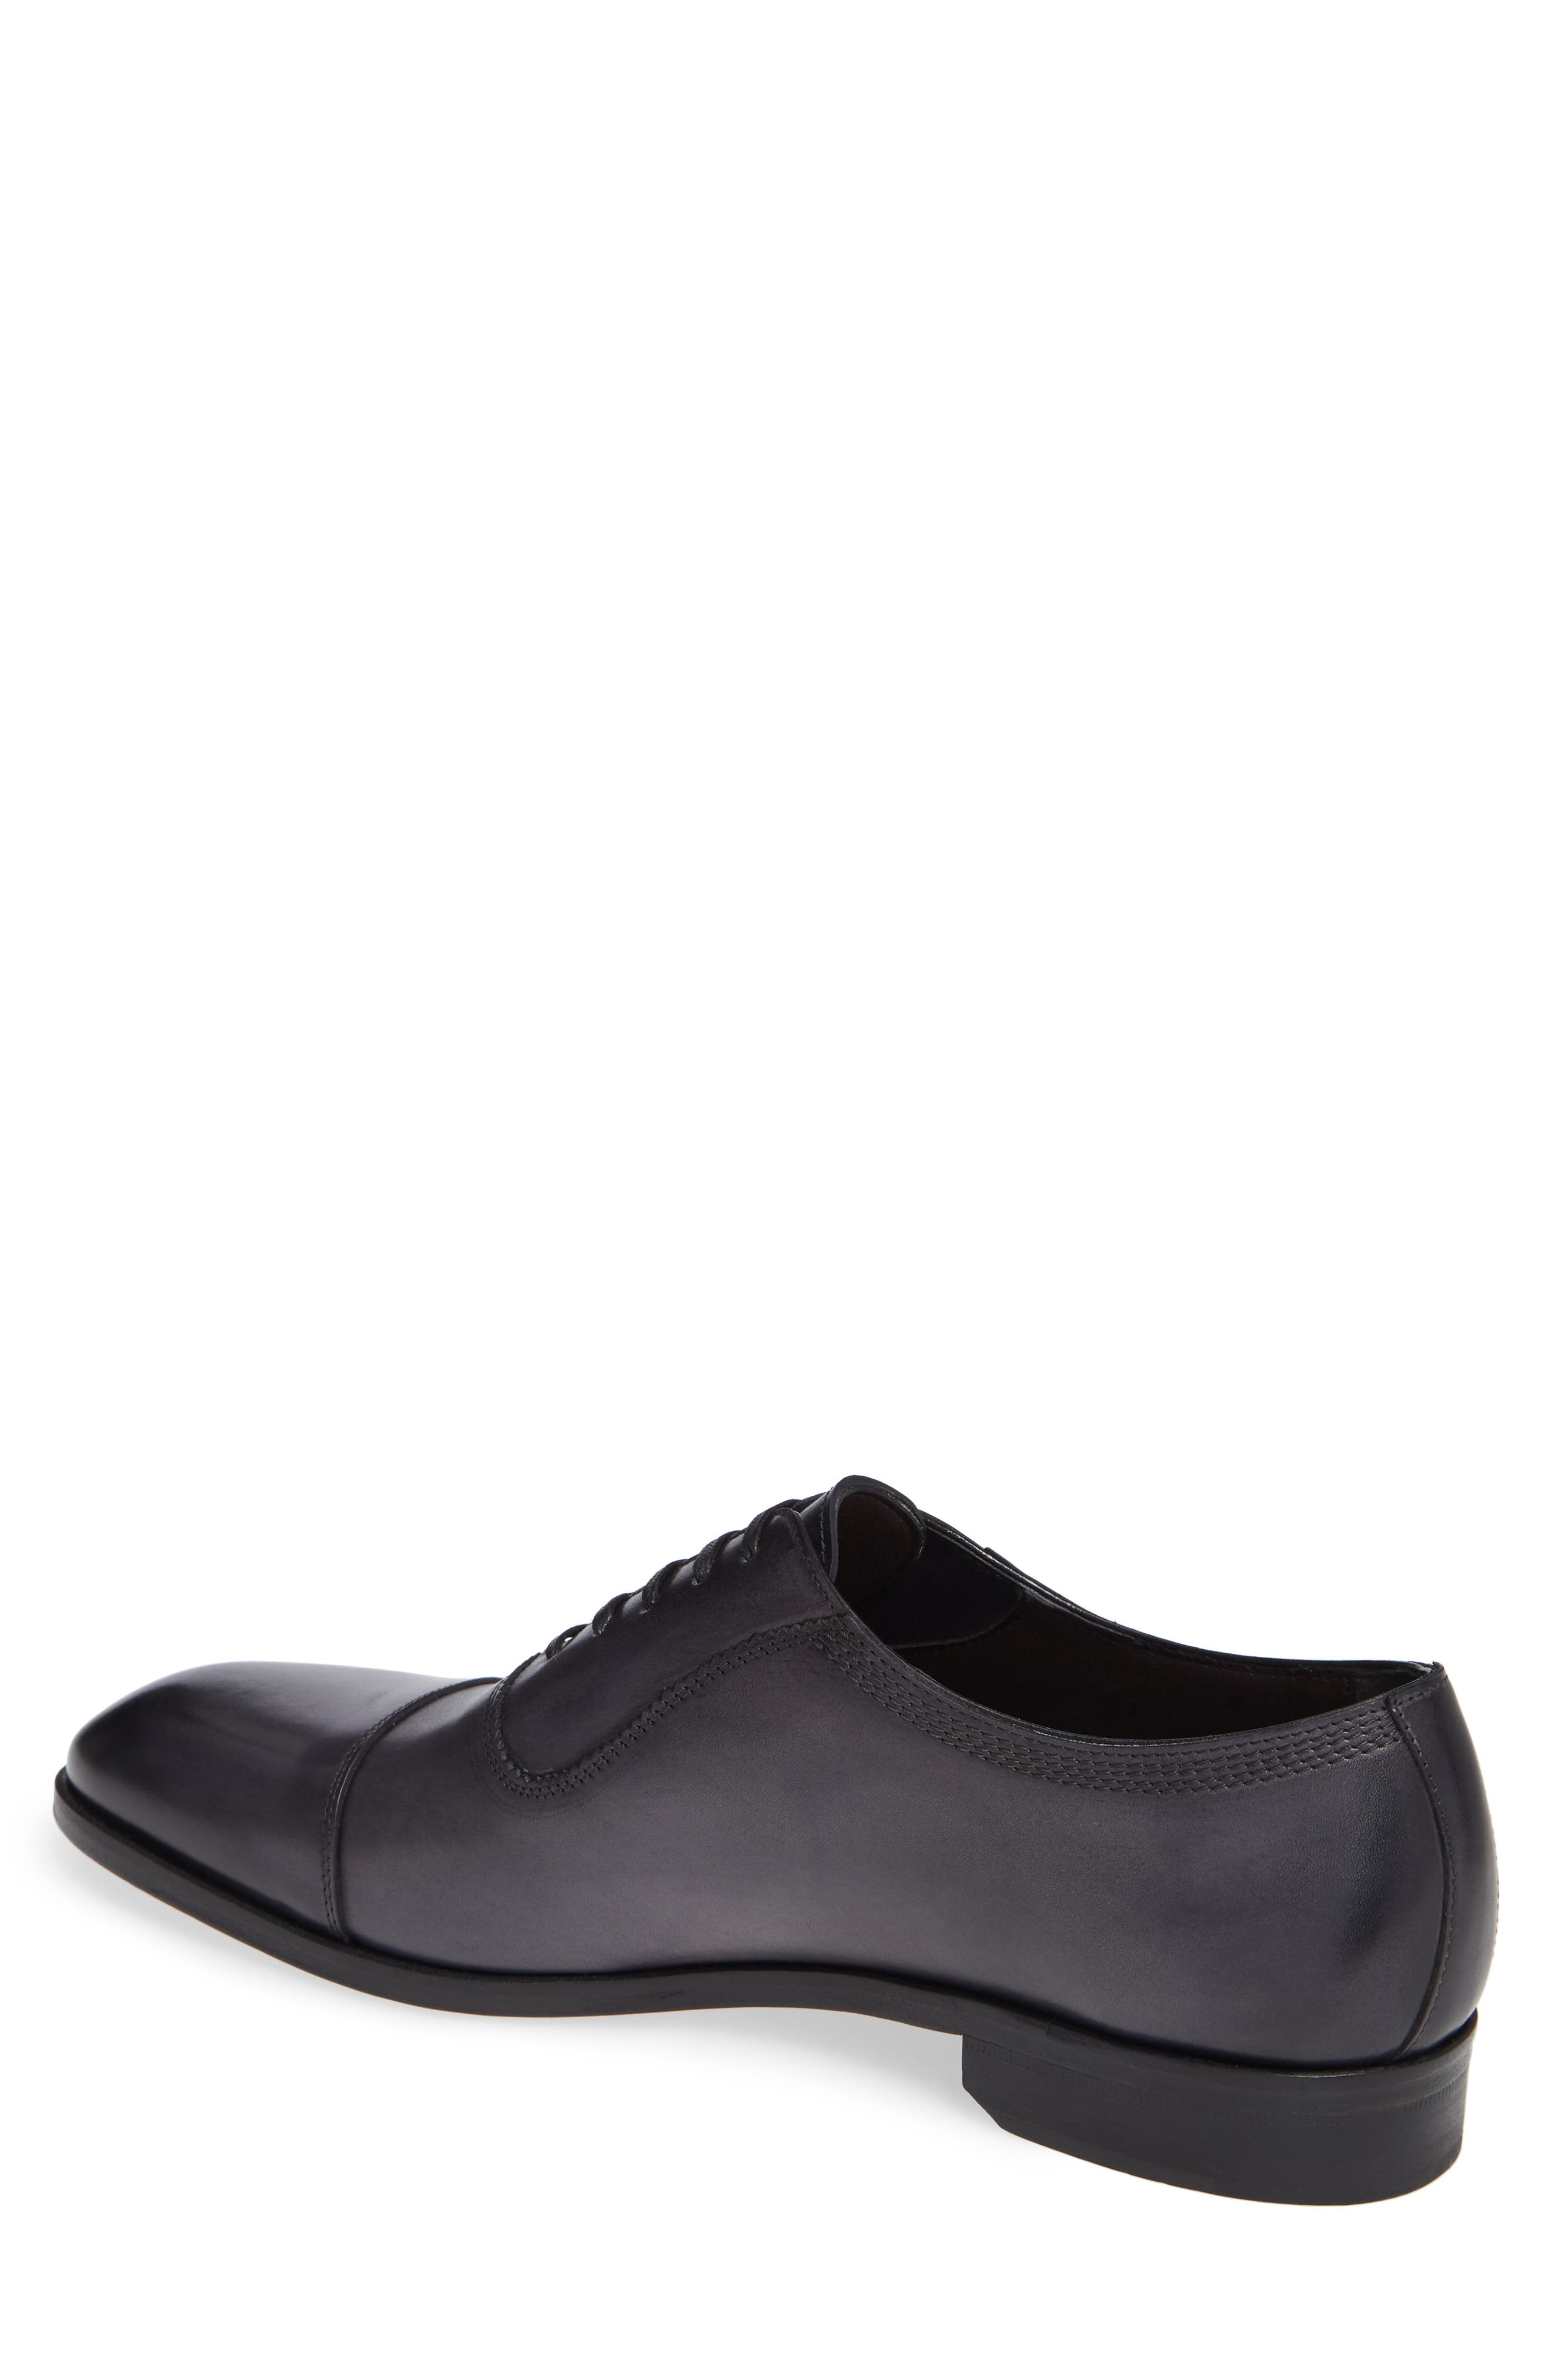 Lucerne Cap Toe Oxford,                             Alternate thumbnail 2, color,                             GREY LEATHER